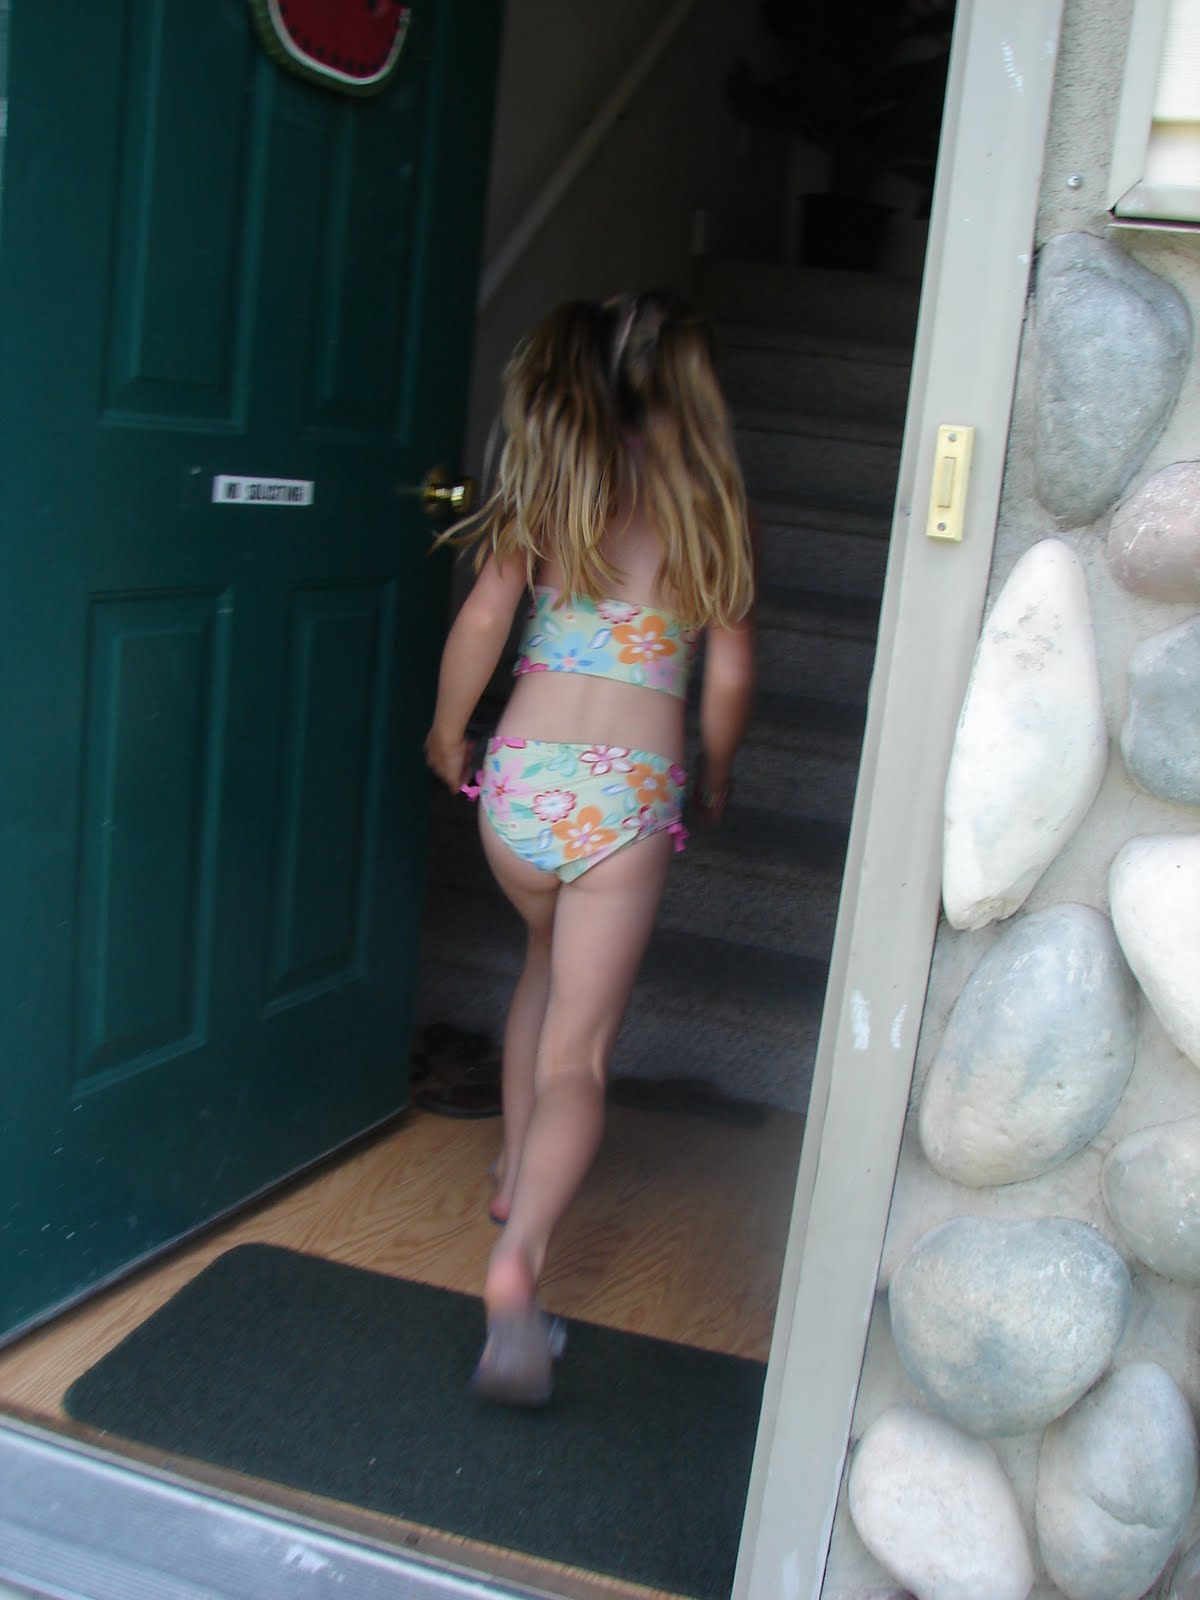 Girls pee in bathing suit opinion you